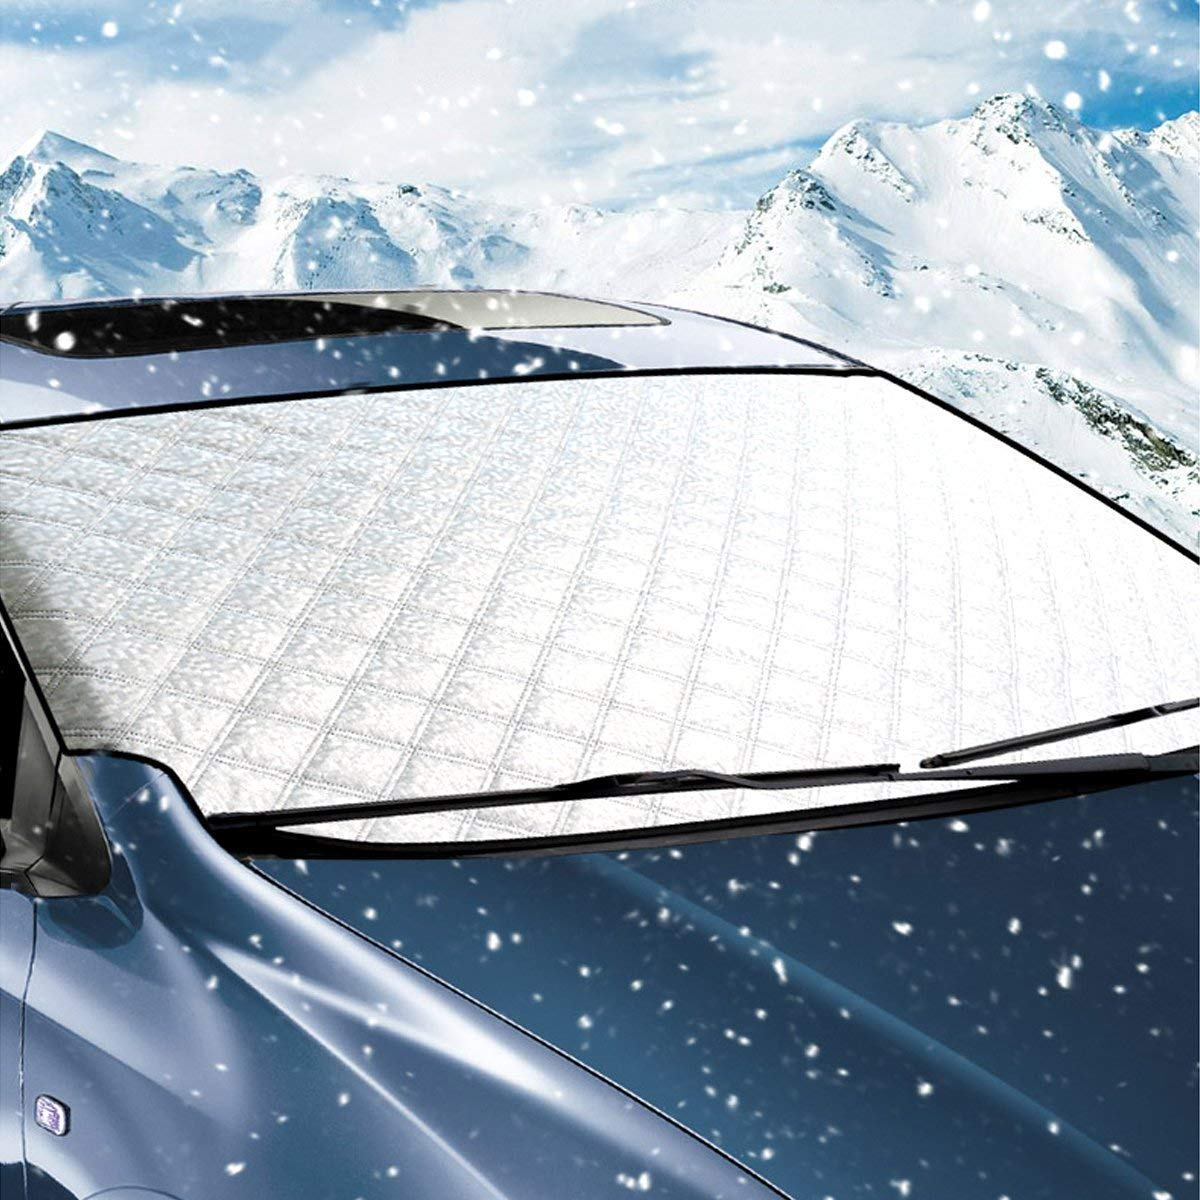 Windshield Snow Cover, Thickened Snow Cover with Ice Scraper Bonus Frost & Ice Windscreen Protector Wind Proof for Four Season, Fit for Most Vehicle 160cm x 110cm/62.99' x 43.3' Fit for Most Vehicle 160cm x 110cm/62.99 x 43.3 Big Ant